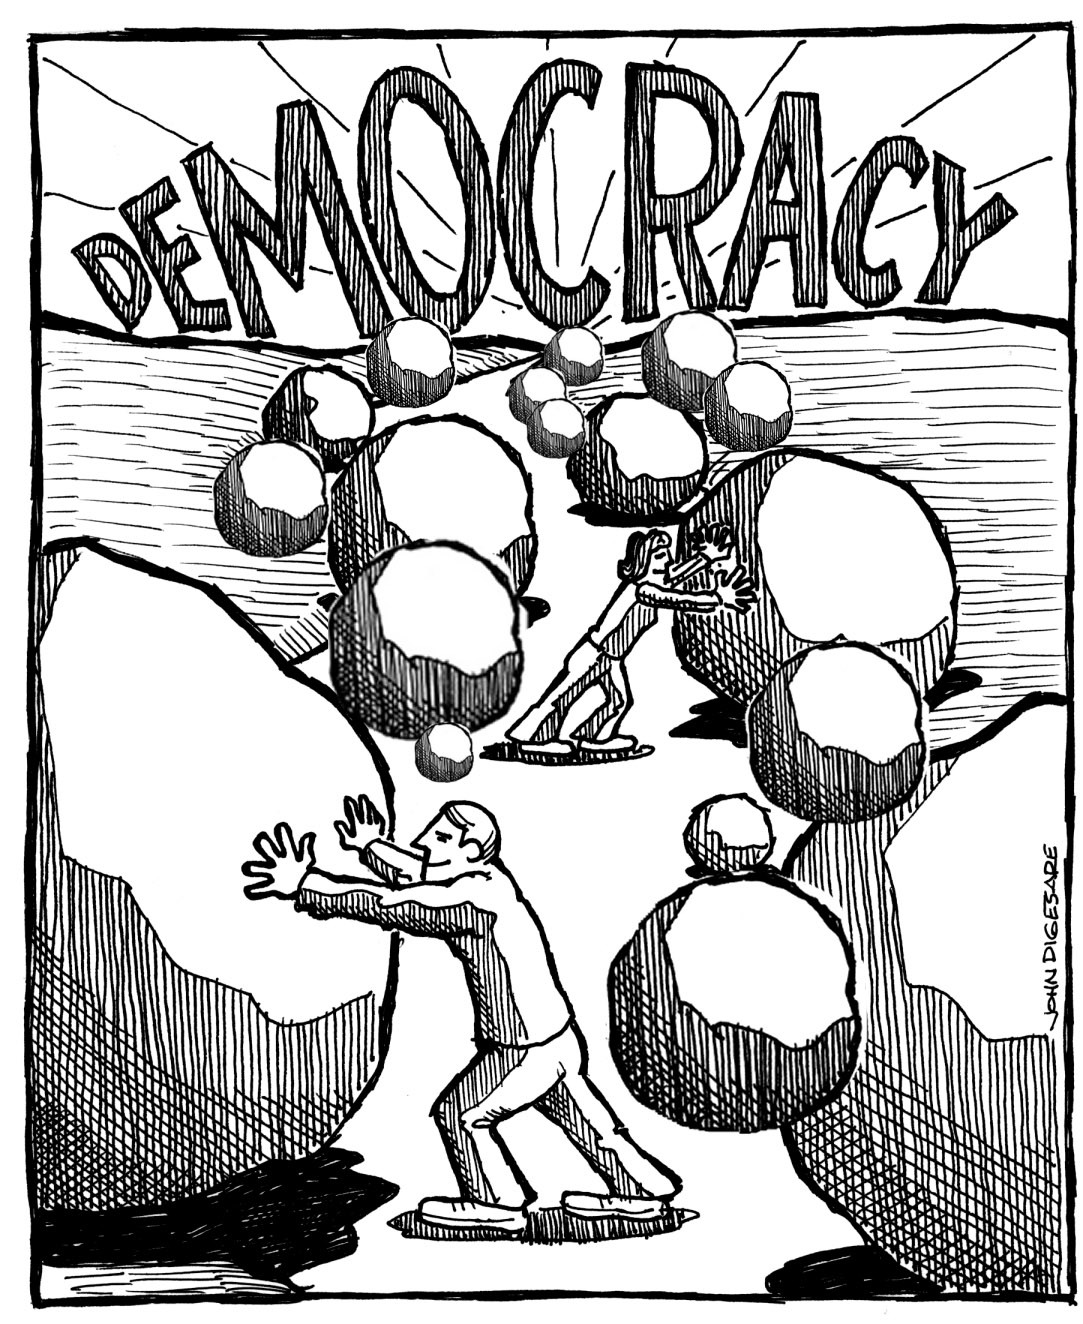 Disadvantages of Democracy | 8 Merits and Demerits with Examples